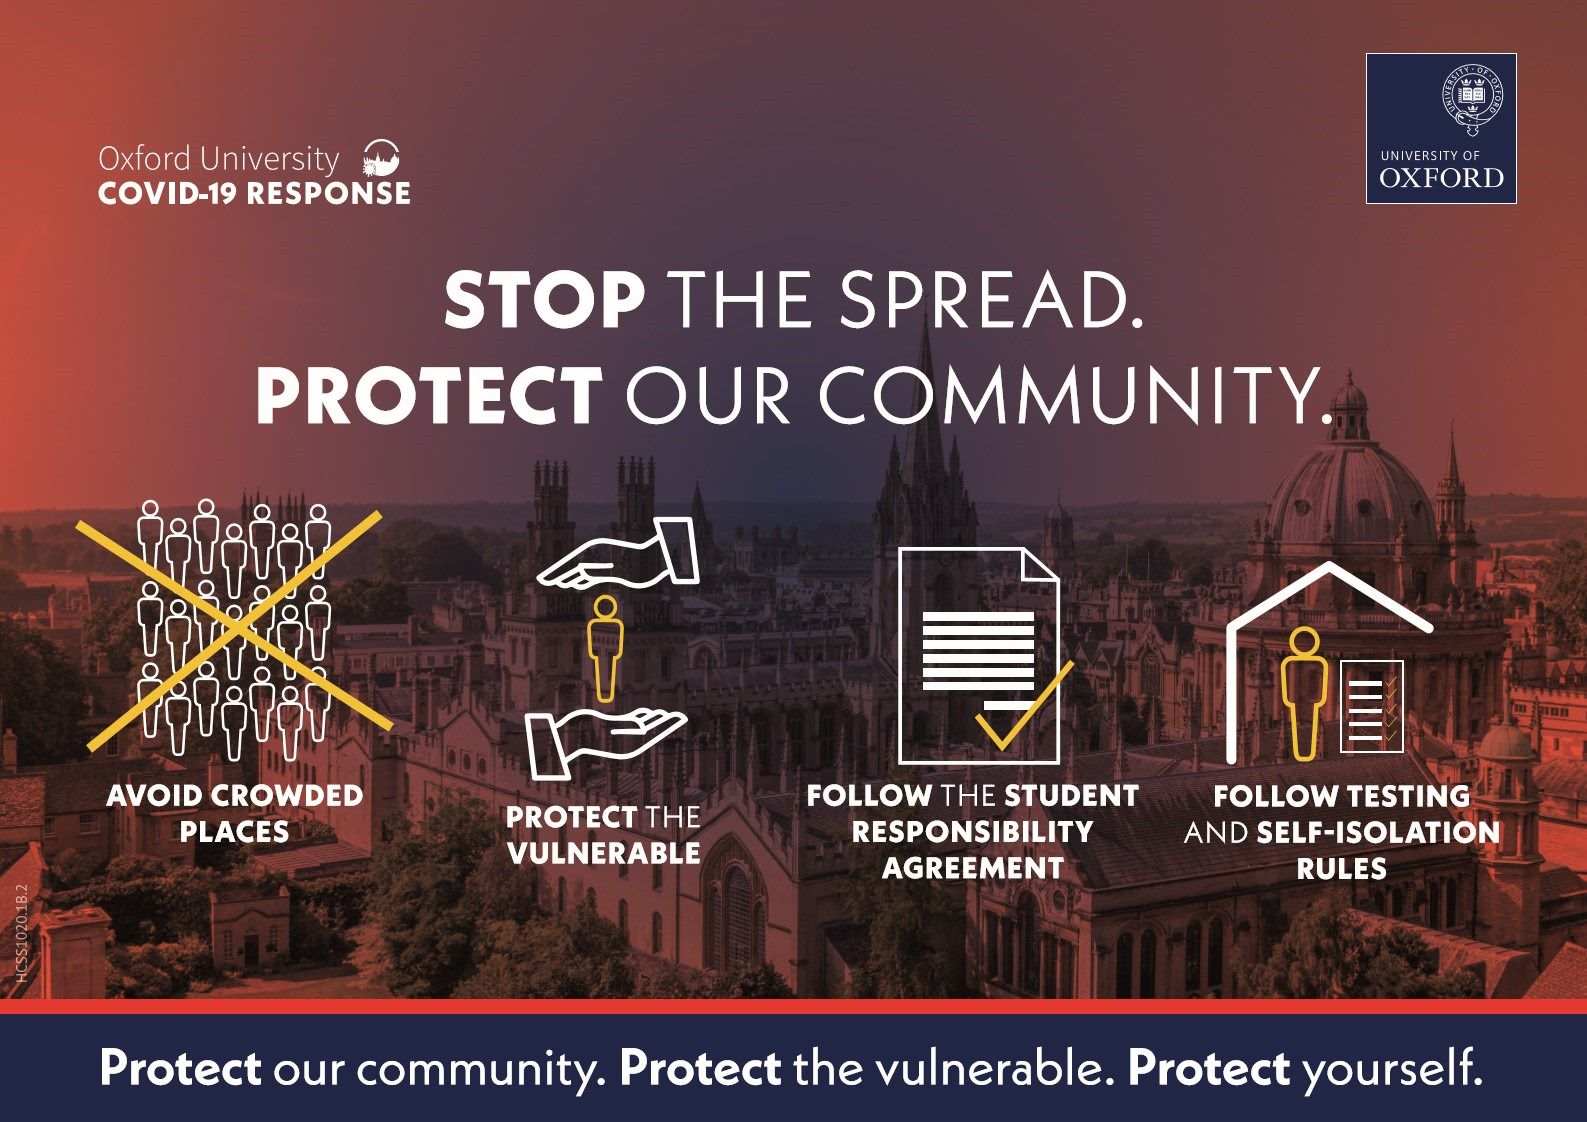 Stop the Spread. Protect Our Community. Avoid crowded places, protect the vulnerable, follow the student responsibility agreement, follow testing and self-isolation rules.